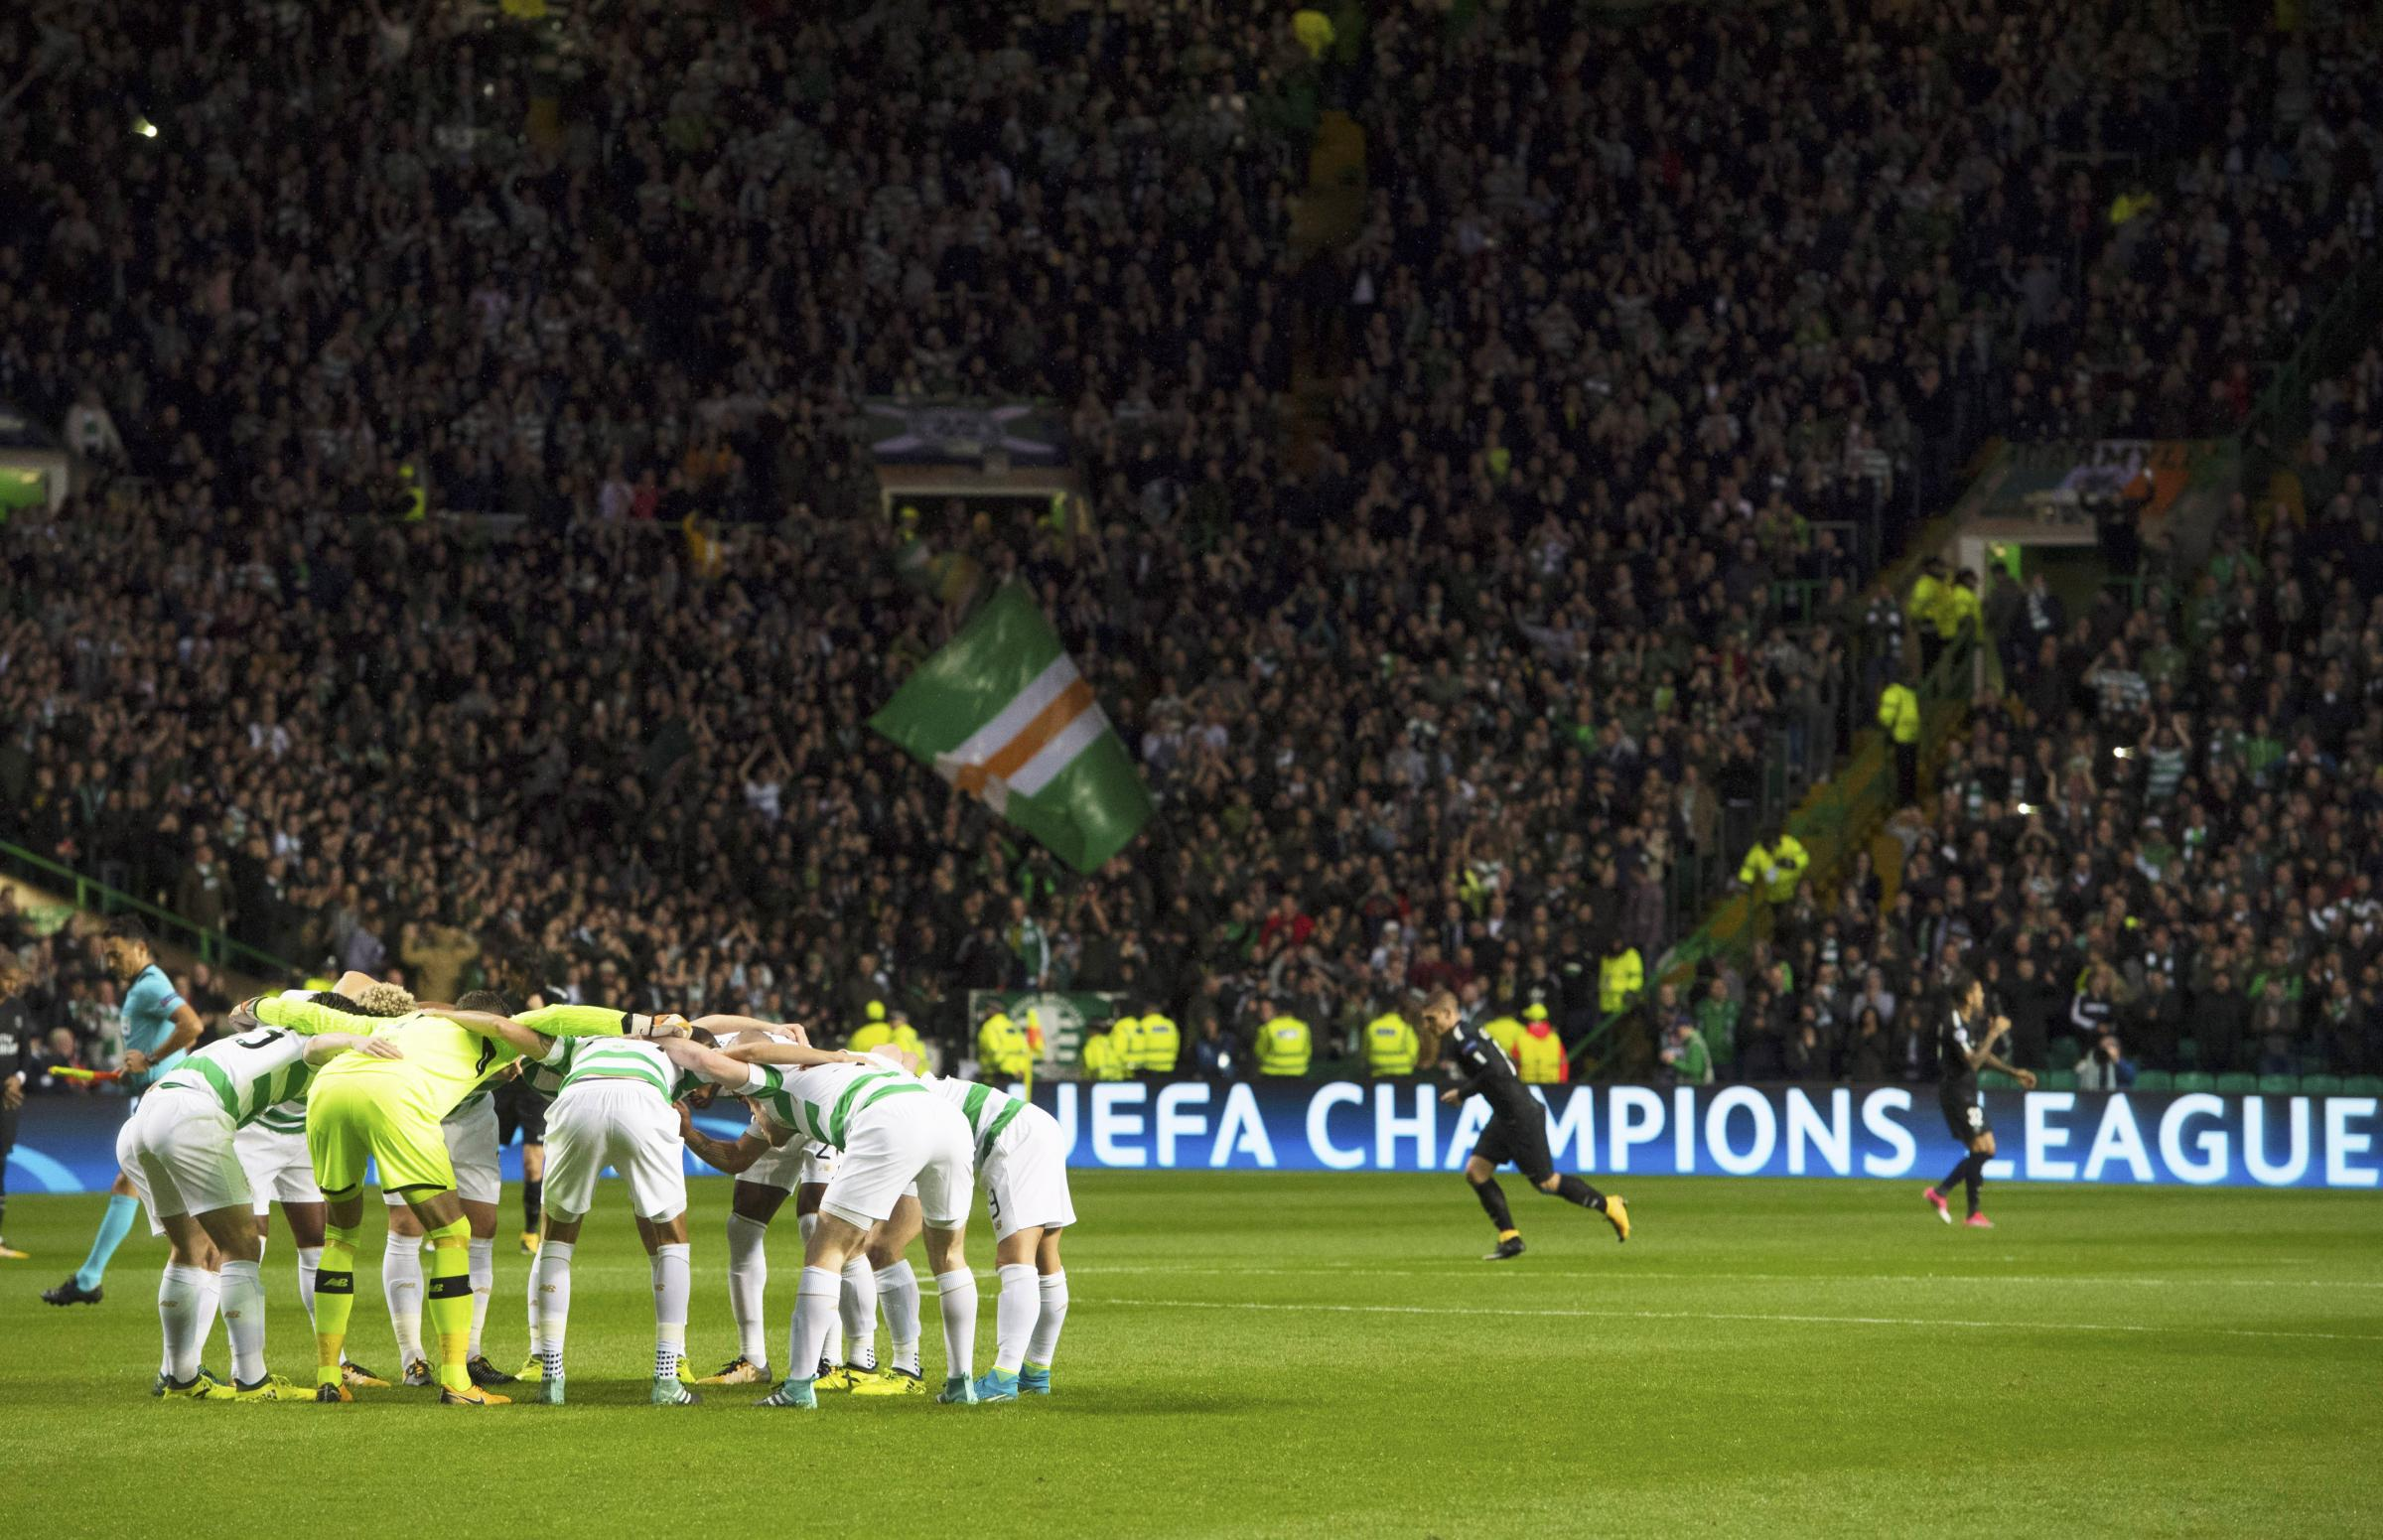 Celtic drawn against Cluj or Maccabi Tel-Aviv in Champions League third qualifying round